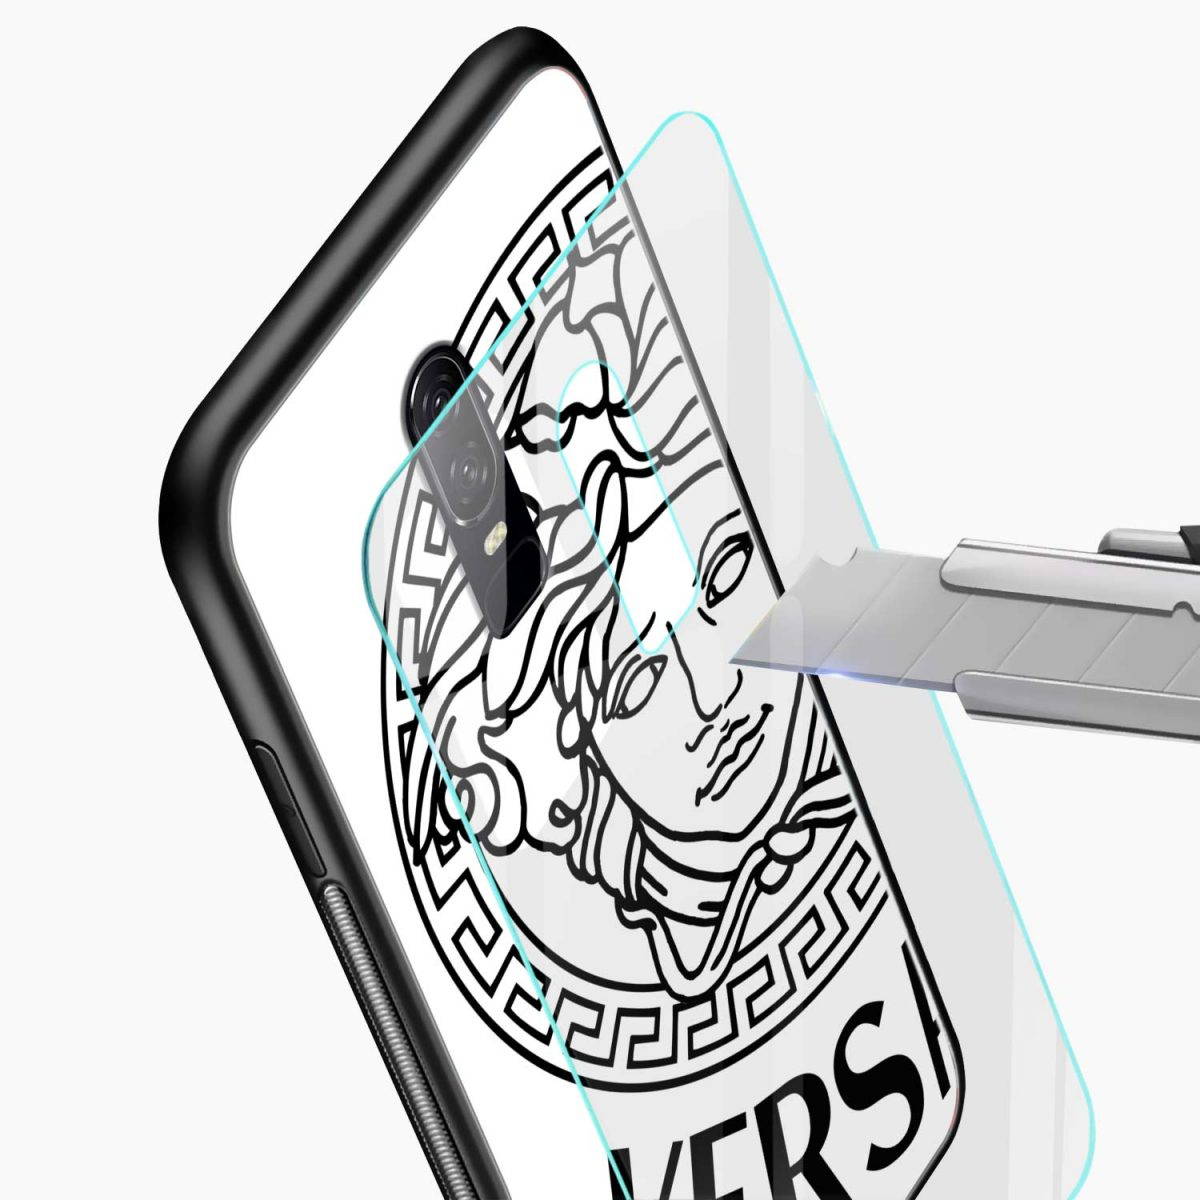 versace black white glass view oneplus 6 back cover